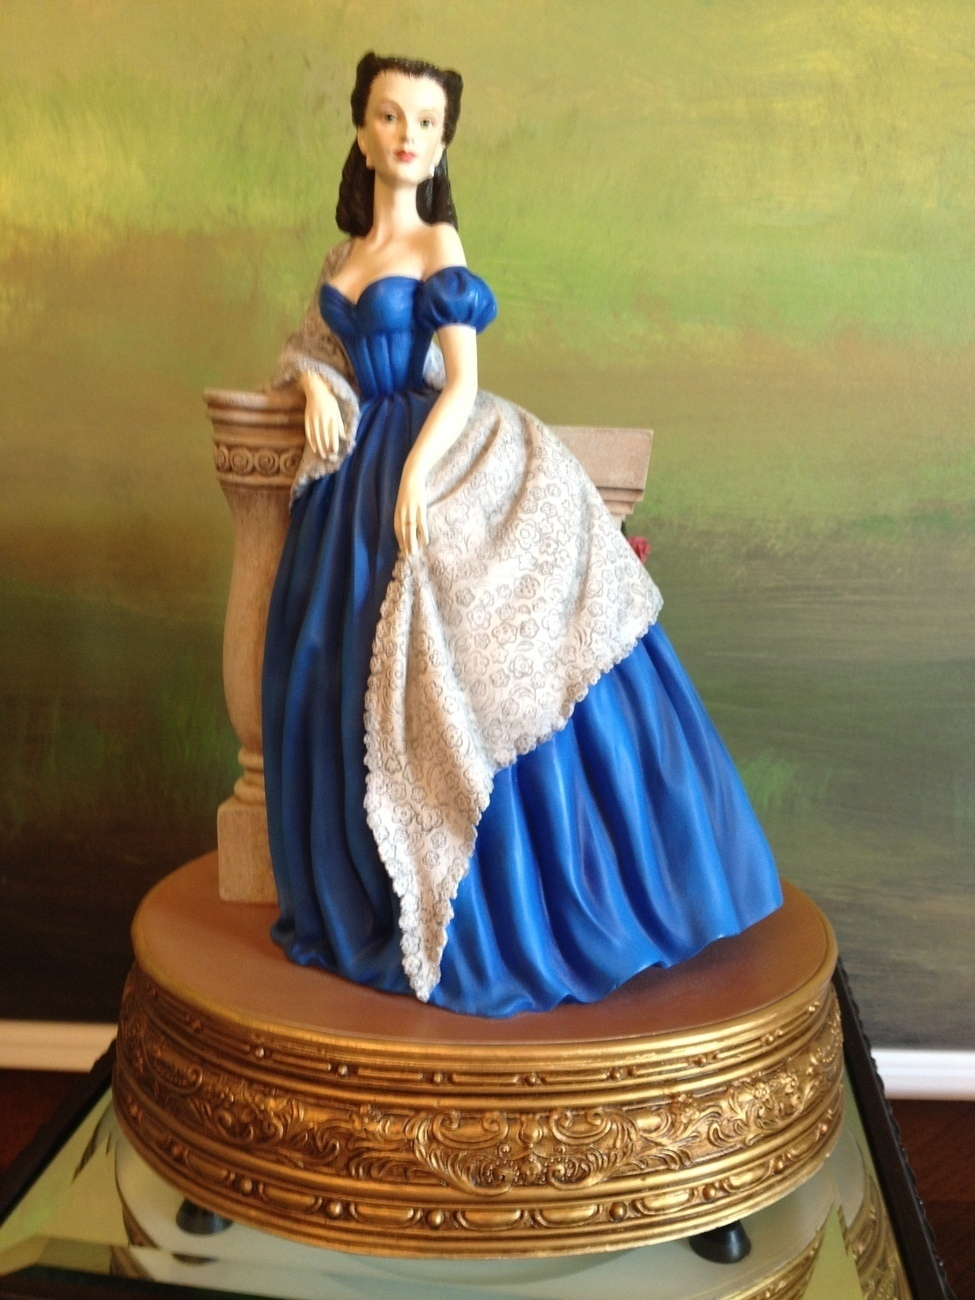 San Francisco Music Box Co - Scarlett Portrait in Blue Dress Gone With the Wind